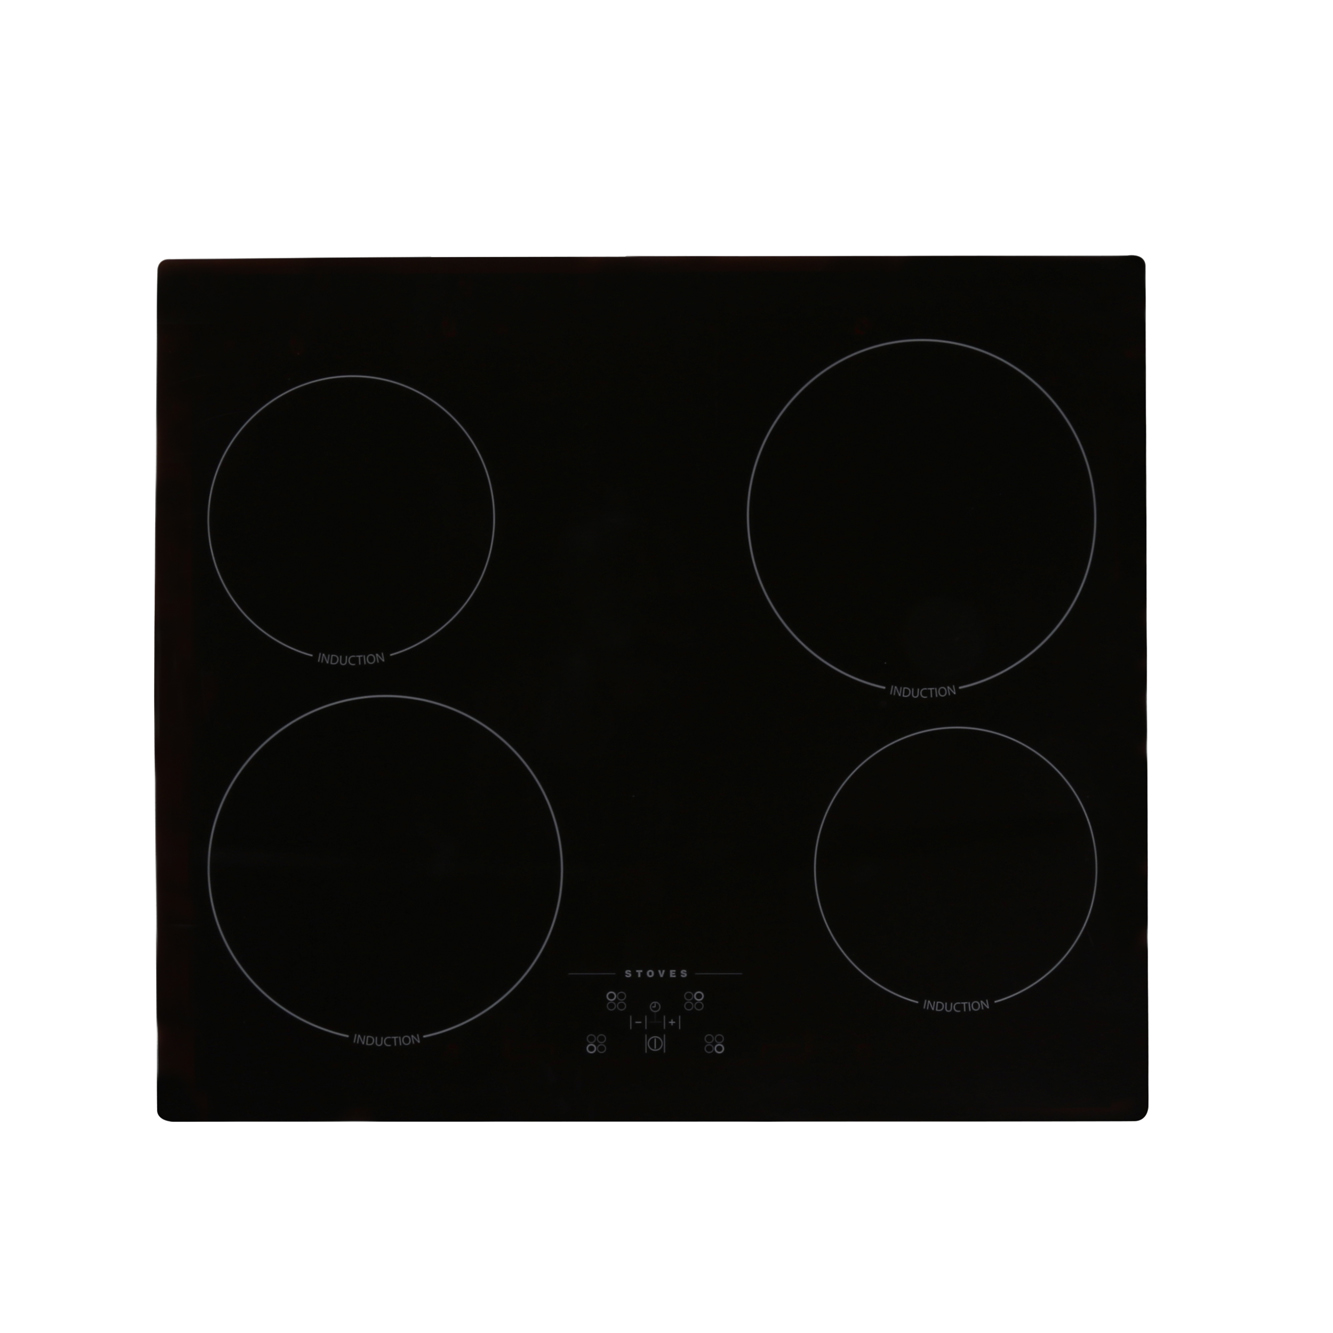 Stoves SIH600T13 Induction Hob